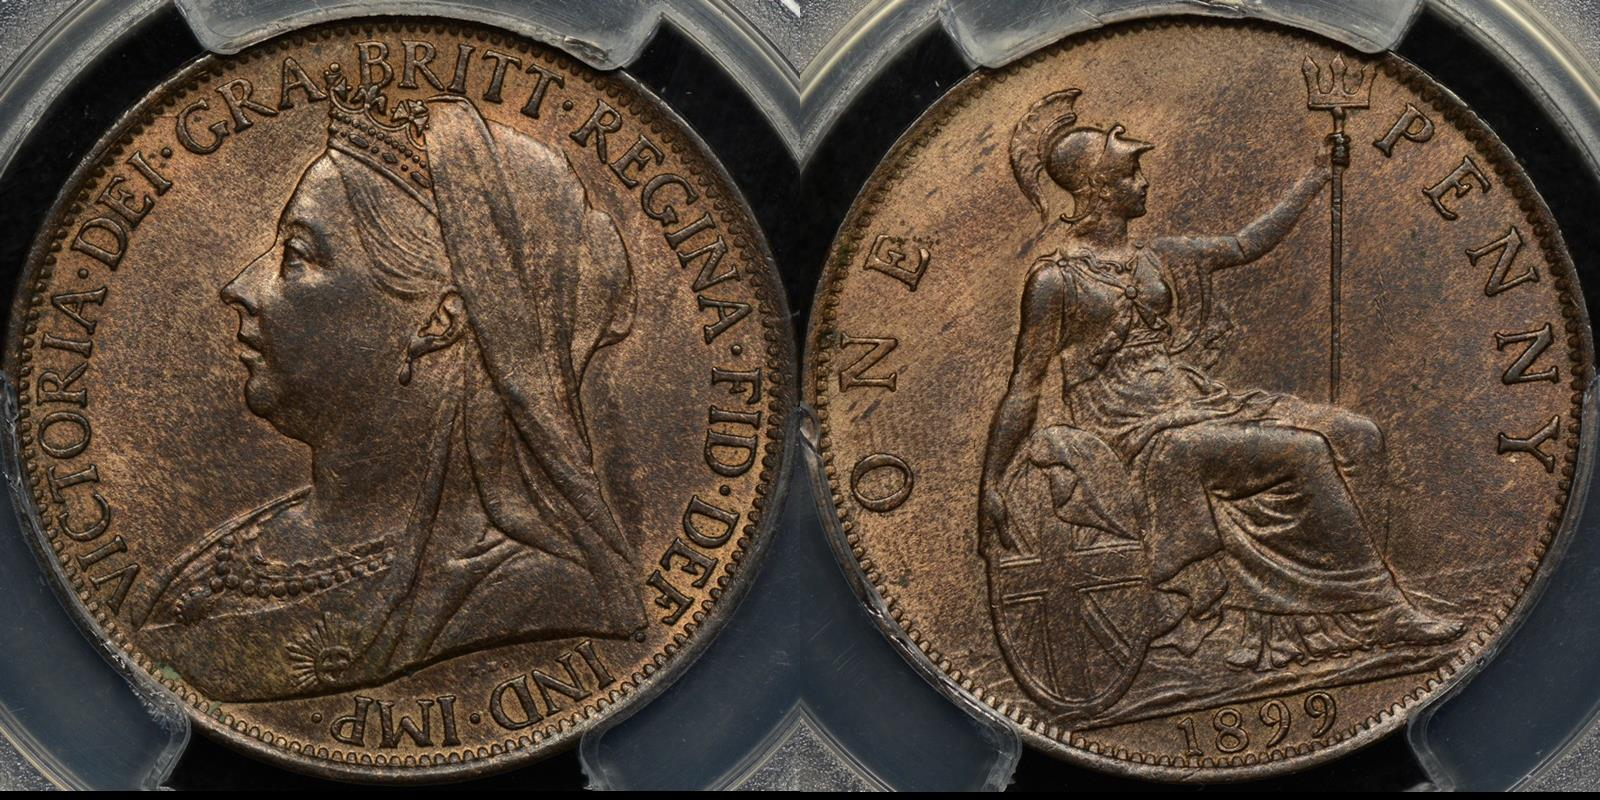 Great britain 1899 penny 1d km 790 PCGS MS64rb Choice Uncirculated